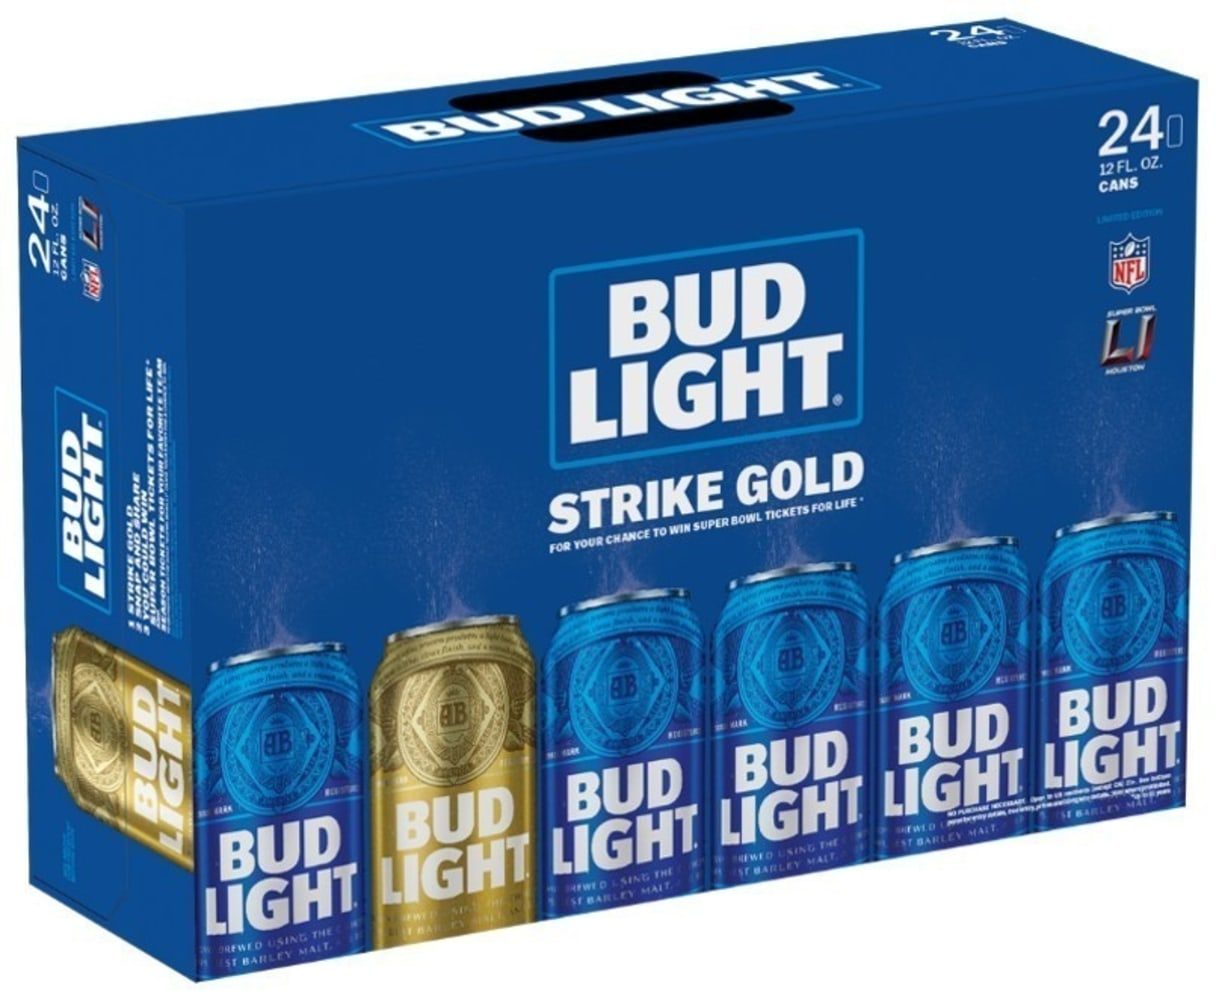 Gold Bud Light can could win you Super Bowl tickets for life